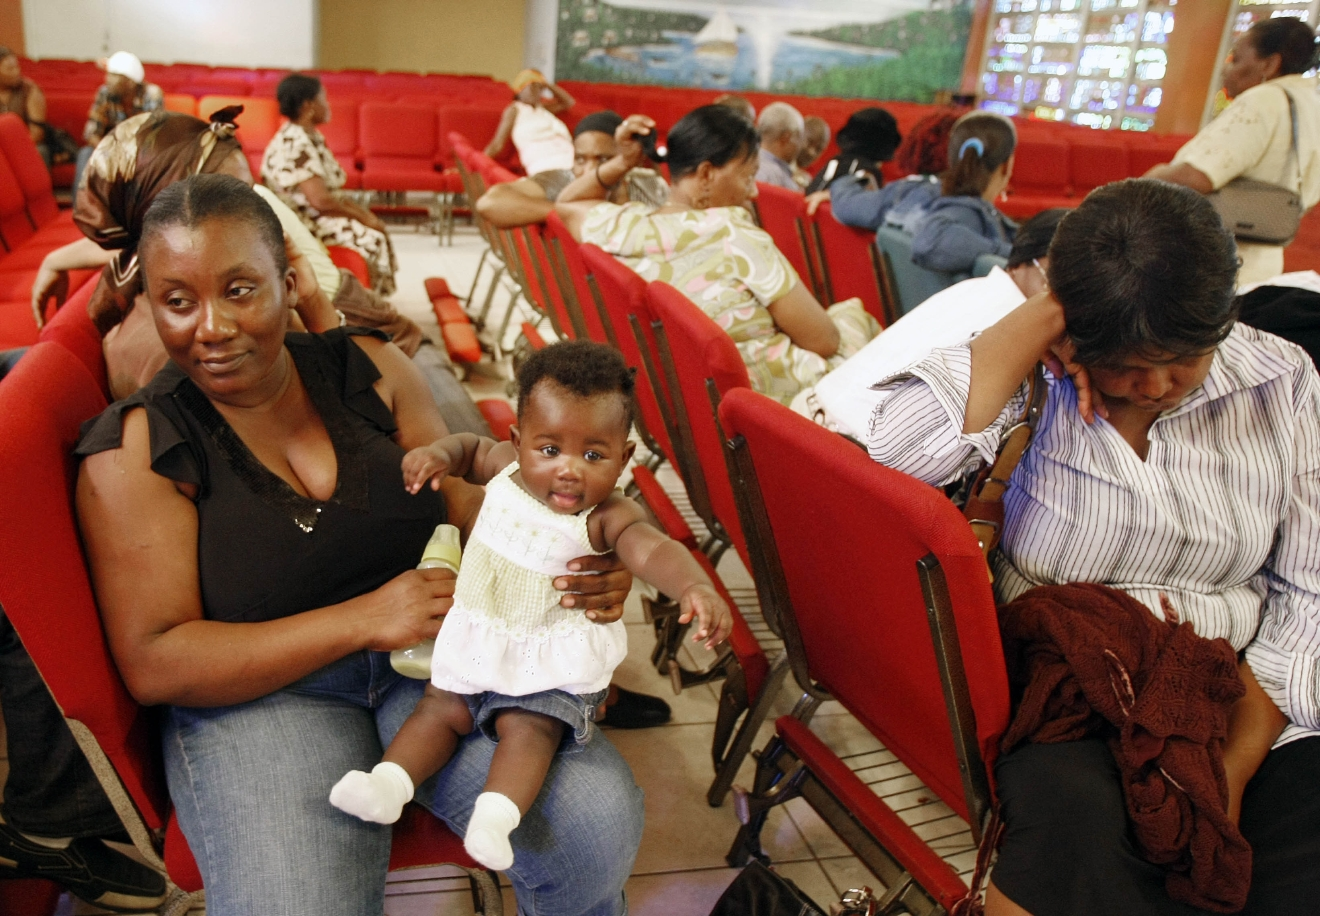 FILE - In this Thursday, Jan. 21, 2010, file photo, Haitian national Carole Manigat, left, holds her daughter Hadassa Carole Albert as she waits for her turn to fill out temporary protective status papers at Notre Dame d'Haiti Catholic Church in the Little Haiti neighborhood in Miami. The U.S. Department of Homeland Security said Thursday, Sept. 22, 2016, that it was widening efforts to deport Haitians, a response to thousands of immigrants from the Caribbean nation who have overwhelmed California border crossings with Mexico in recent months. The move lifts special protections that shielded Haitians from deportation after their nation's 2010 earthquake. (AP Photo/Alan Diaz, File)